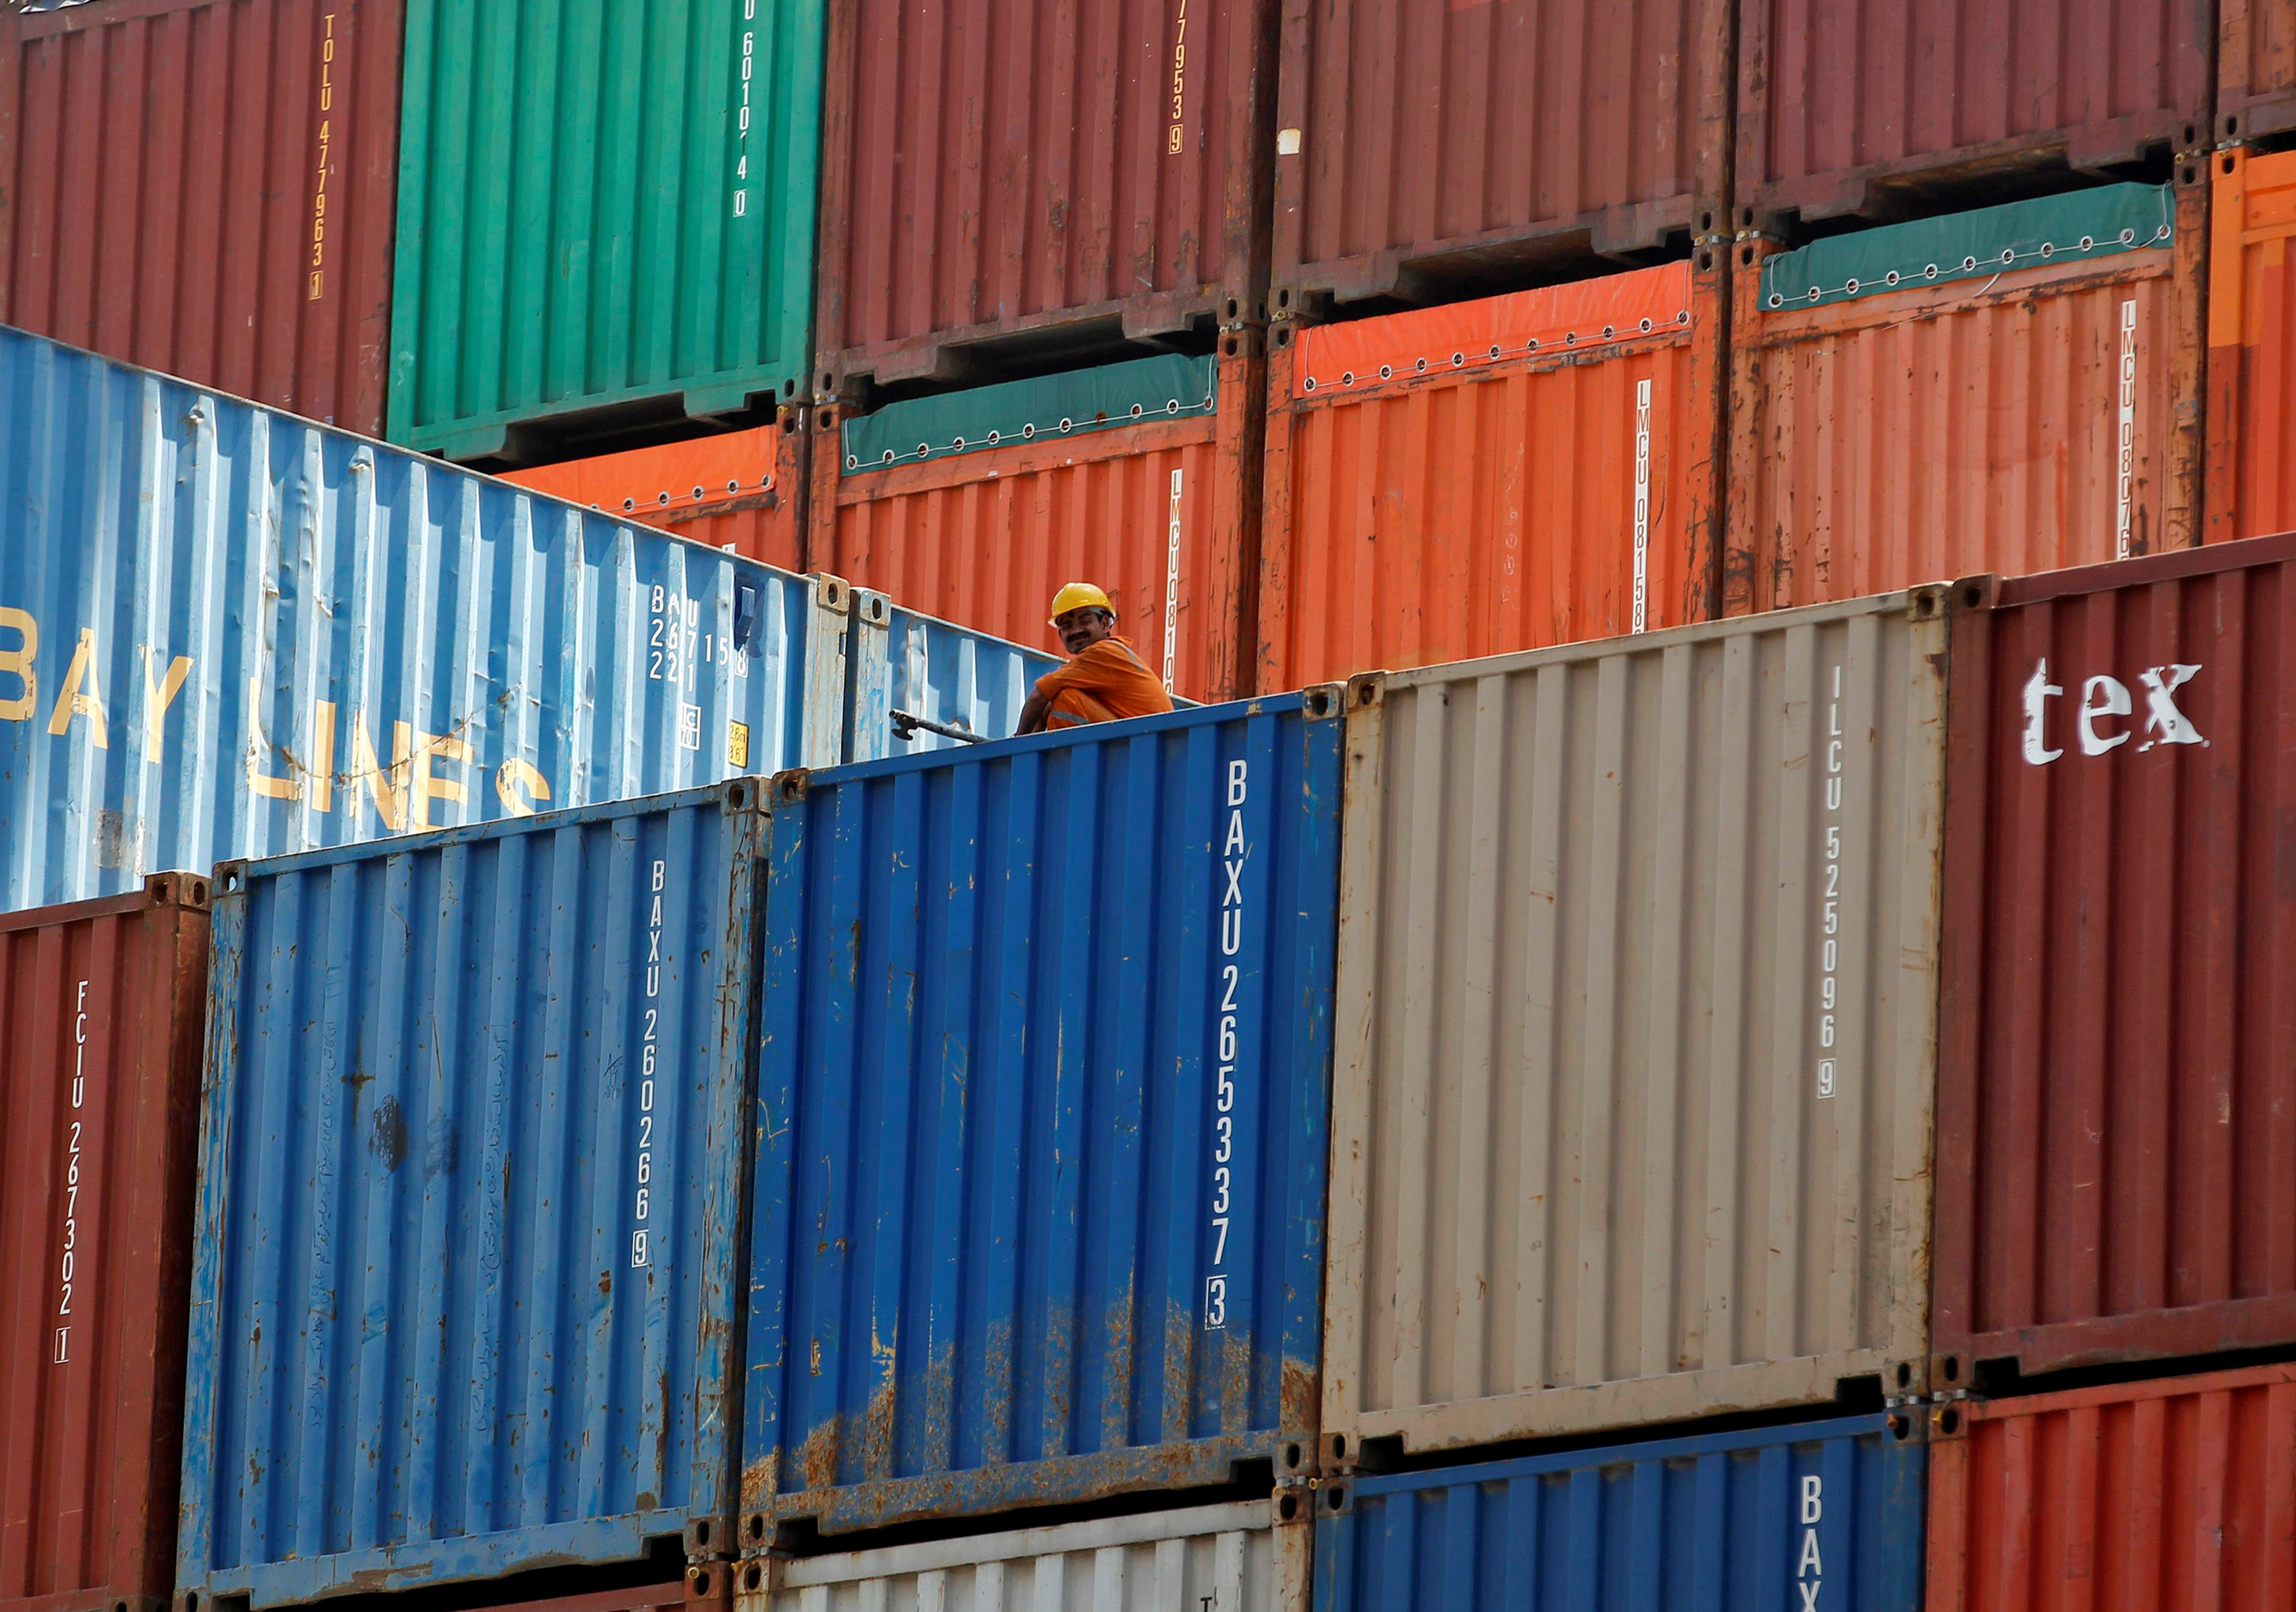 India's January trade deficit widens, slow exports growth a concern